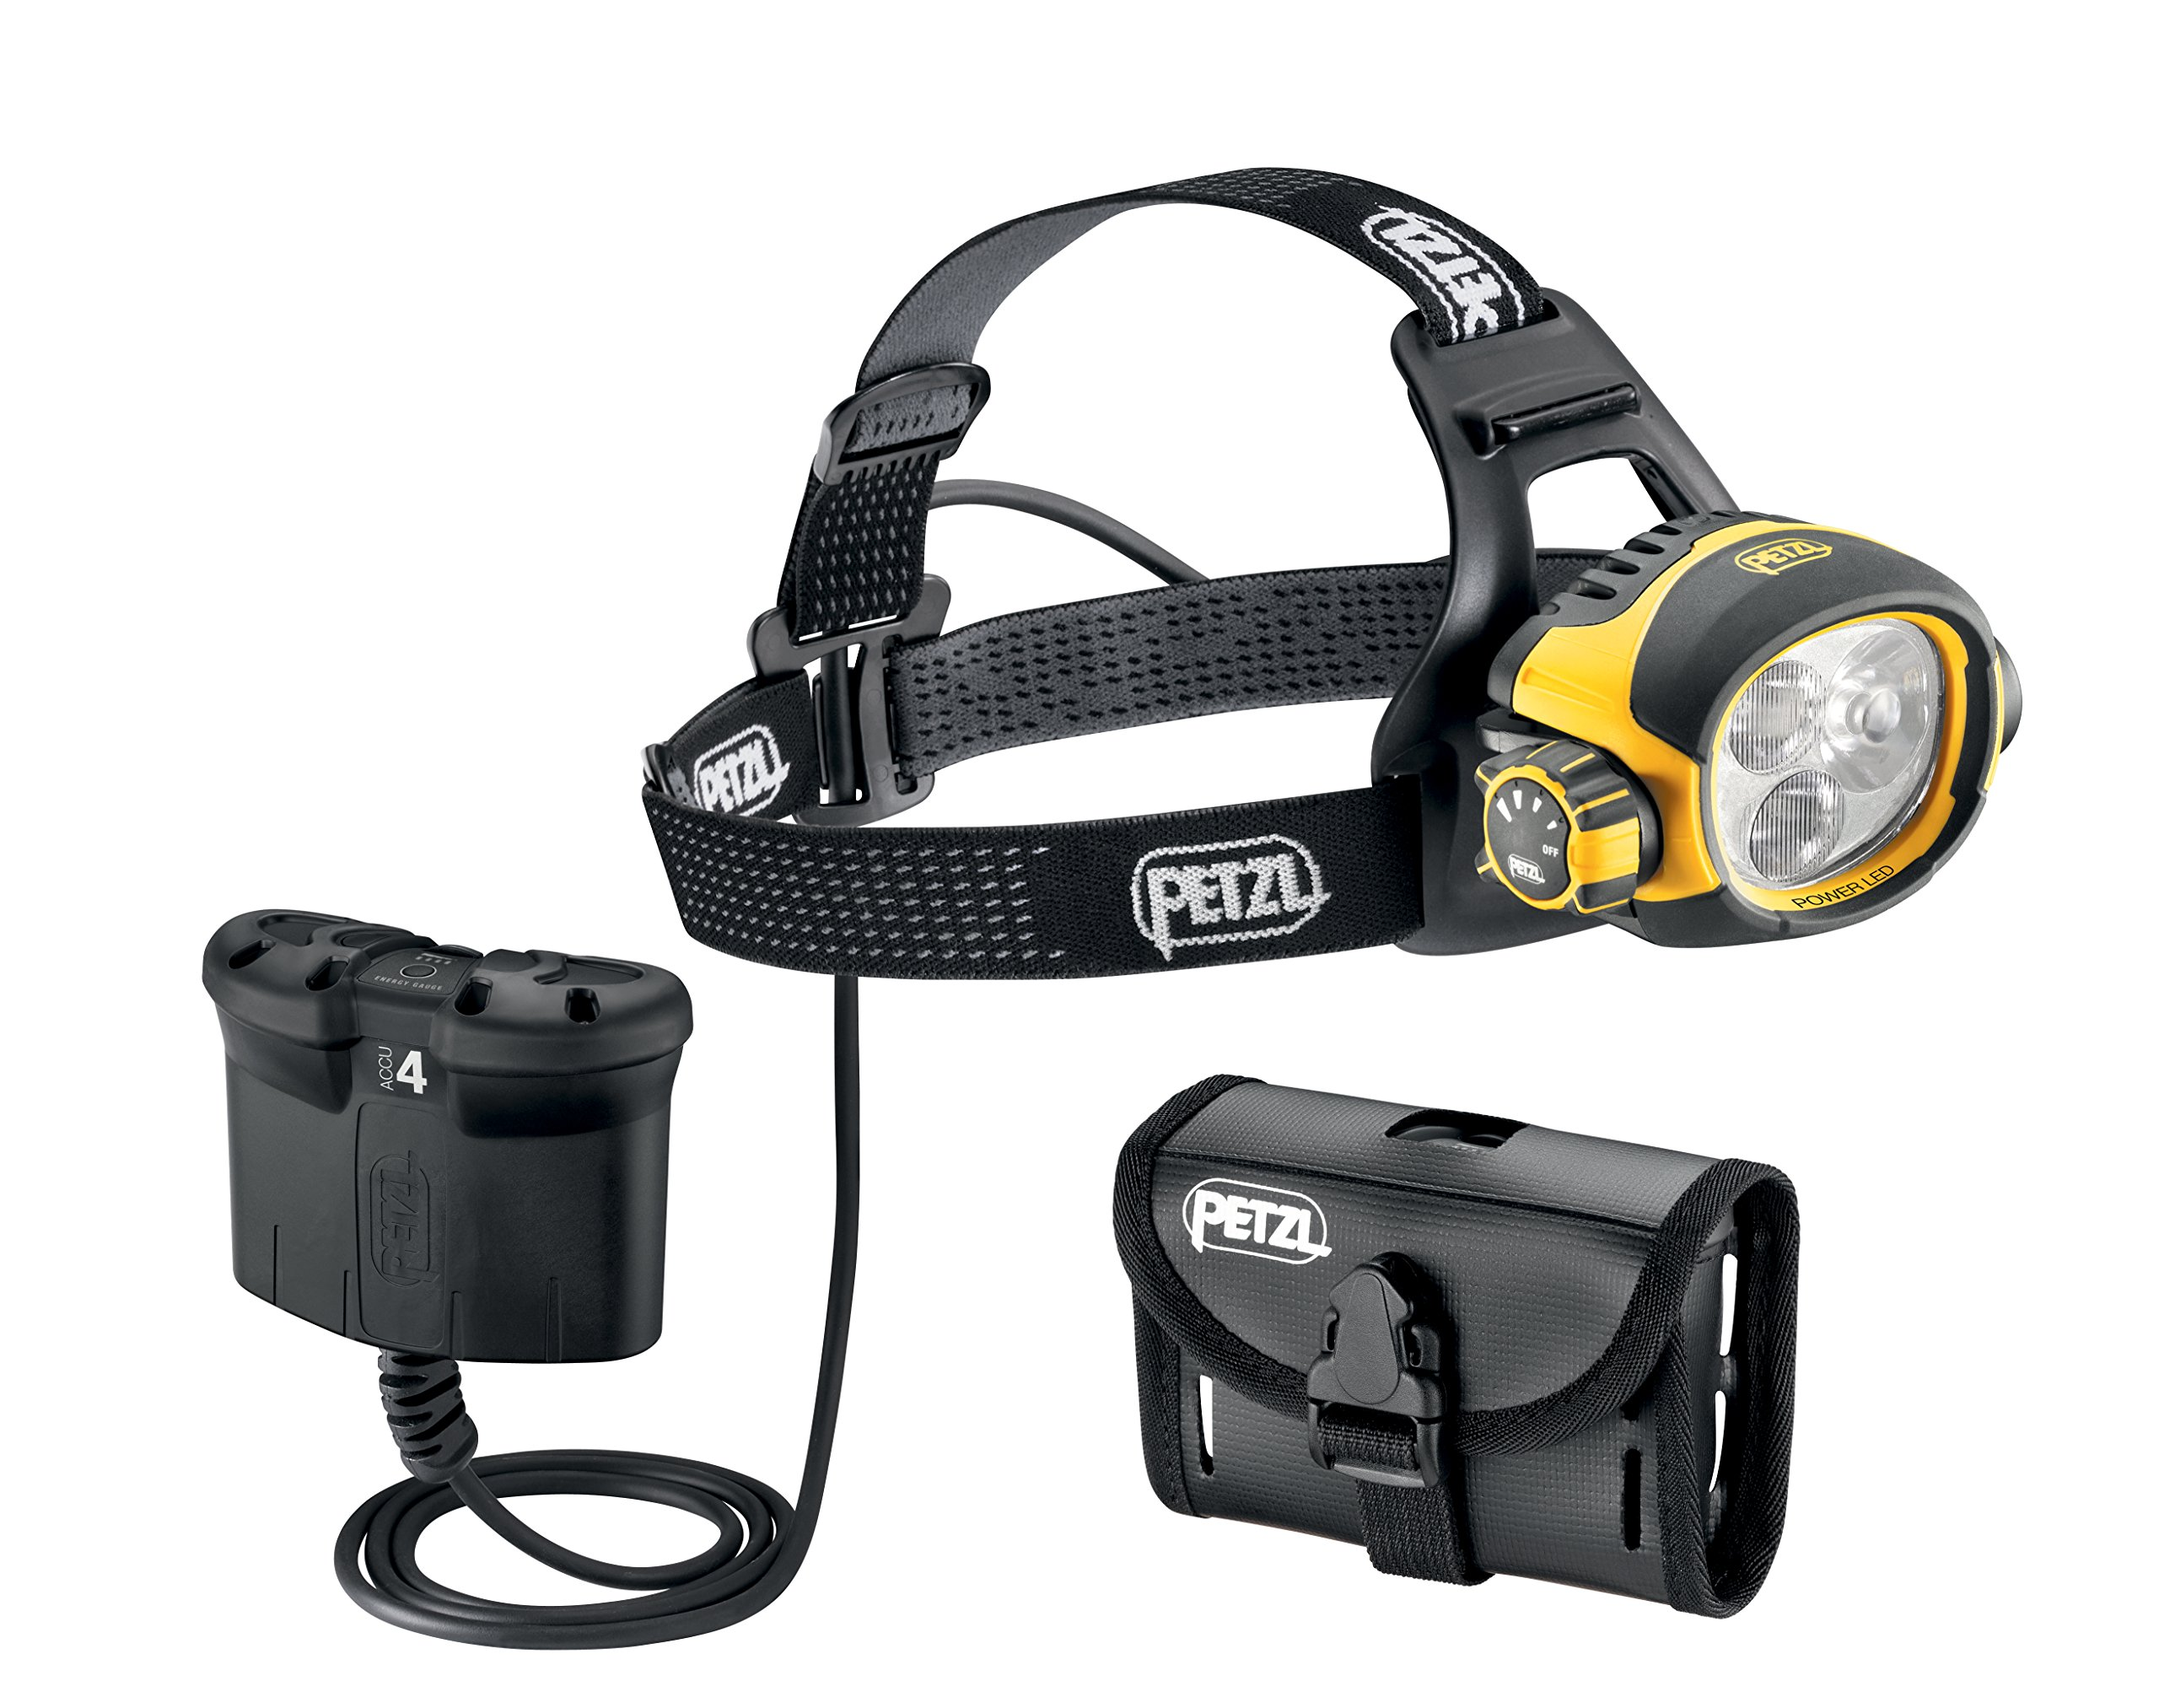 Petzl - ULTRA VARIO BELT Headlamp, 520 Lumens, Constant Lighting, Multi-Beam, with ACCU 4 Battery & Pouch